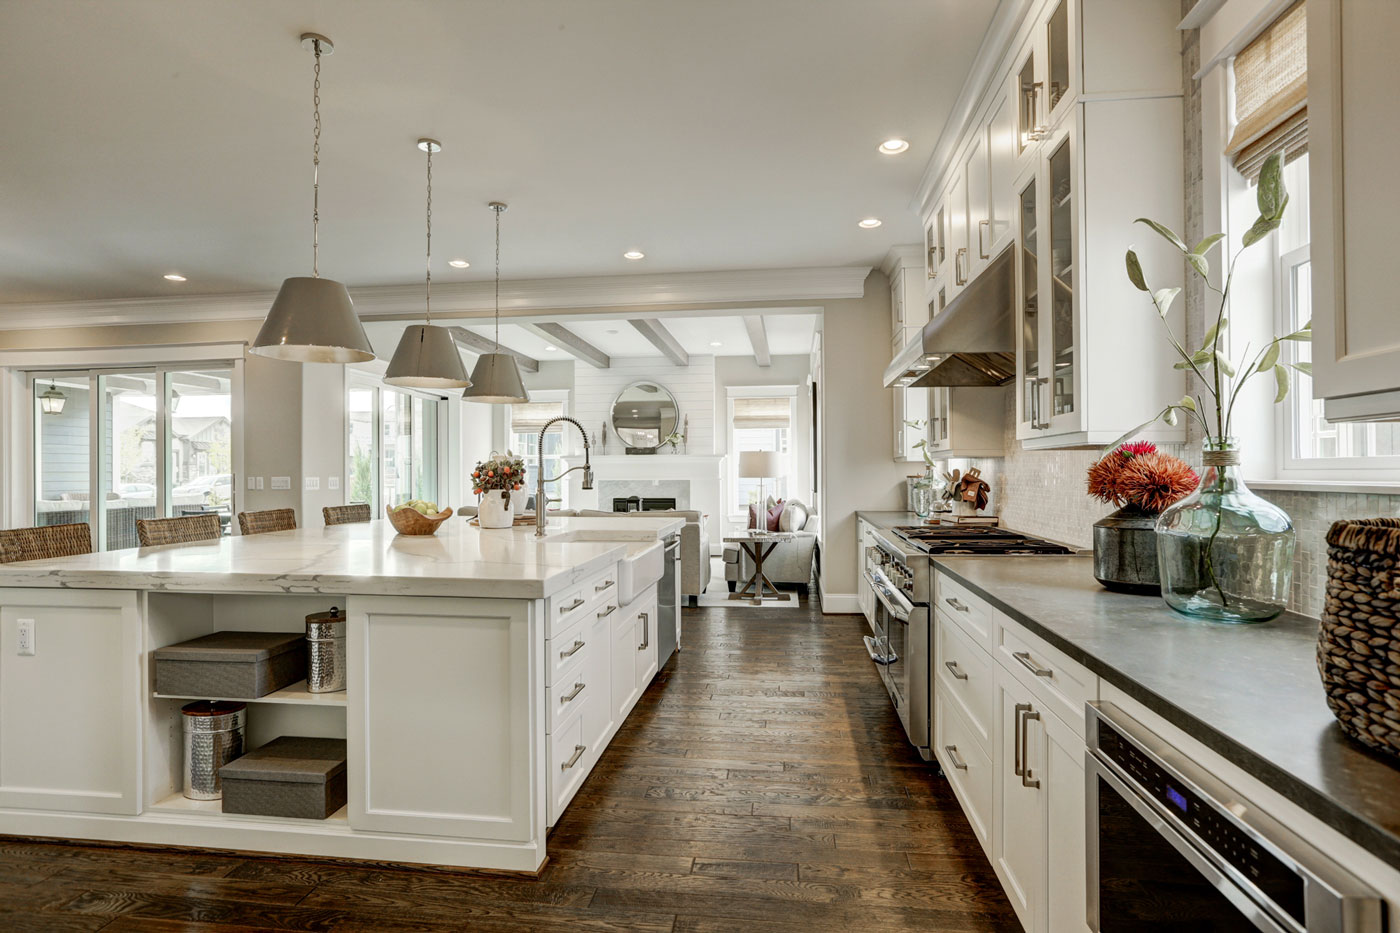 Colorado Model Home Featuring A White Farmhouse Kitchen With An Oversized  Island And Dramatic Statement Pendants